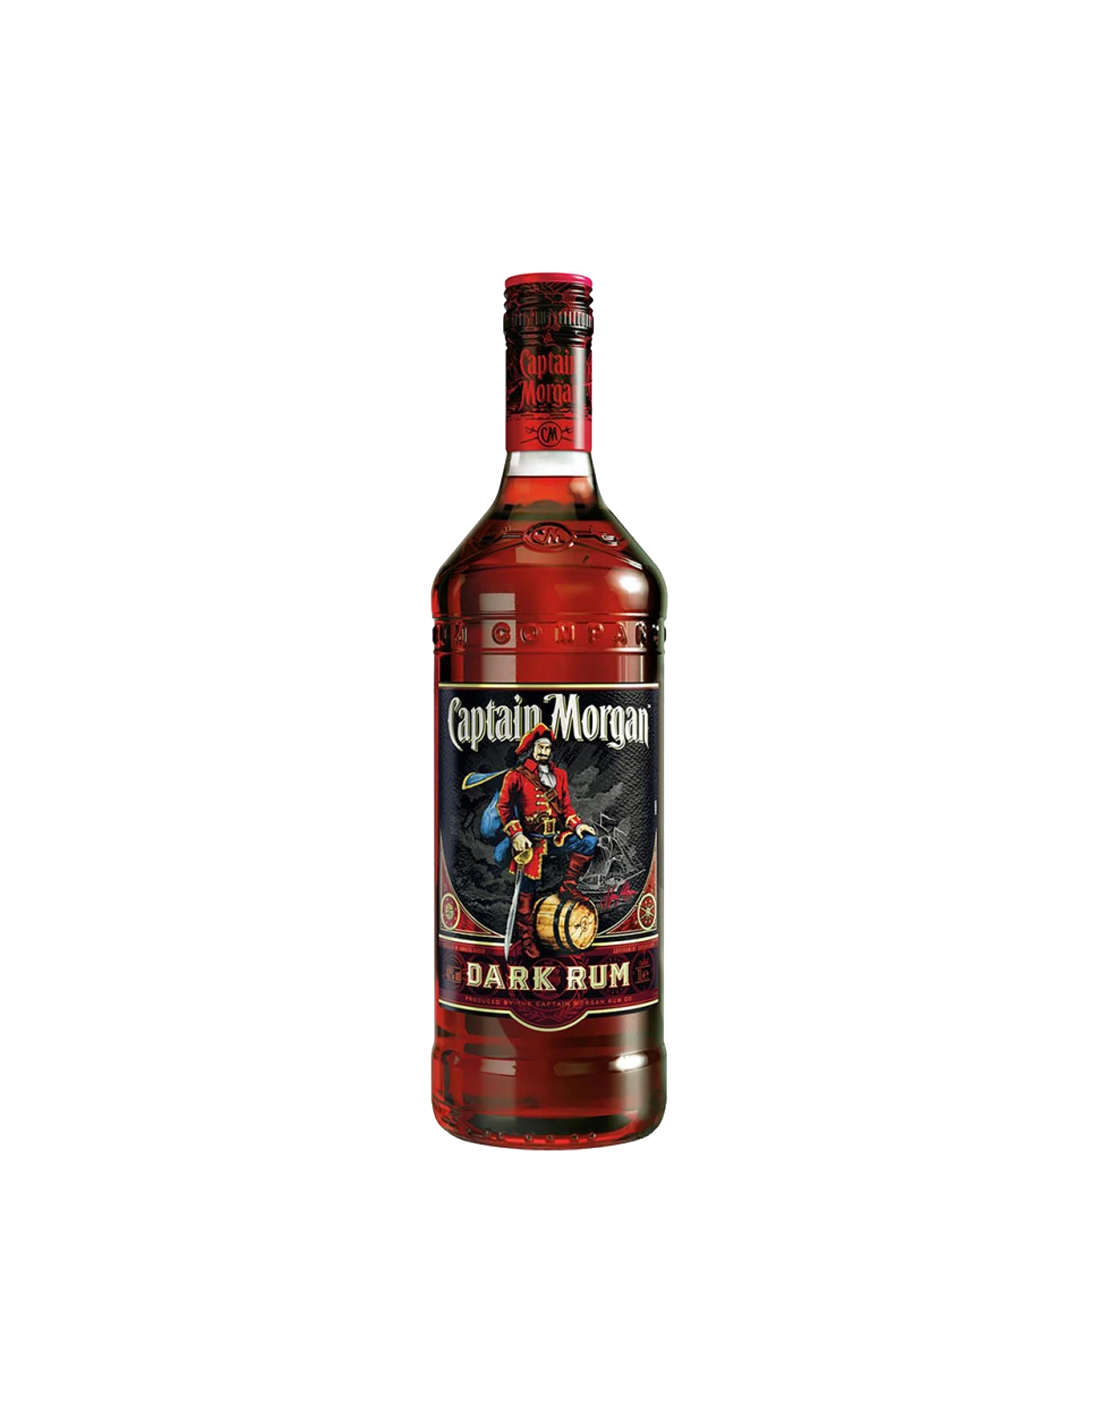 Rom negru Captain Morgan, 40% alc., 0.7L, Jamaica